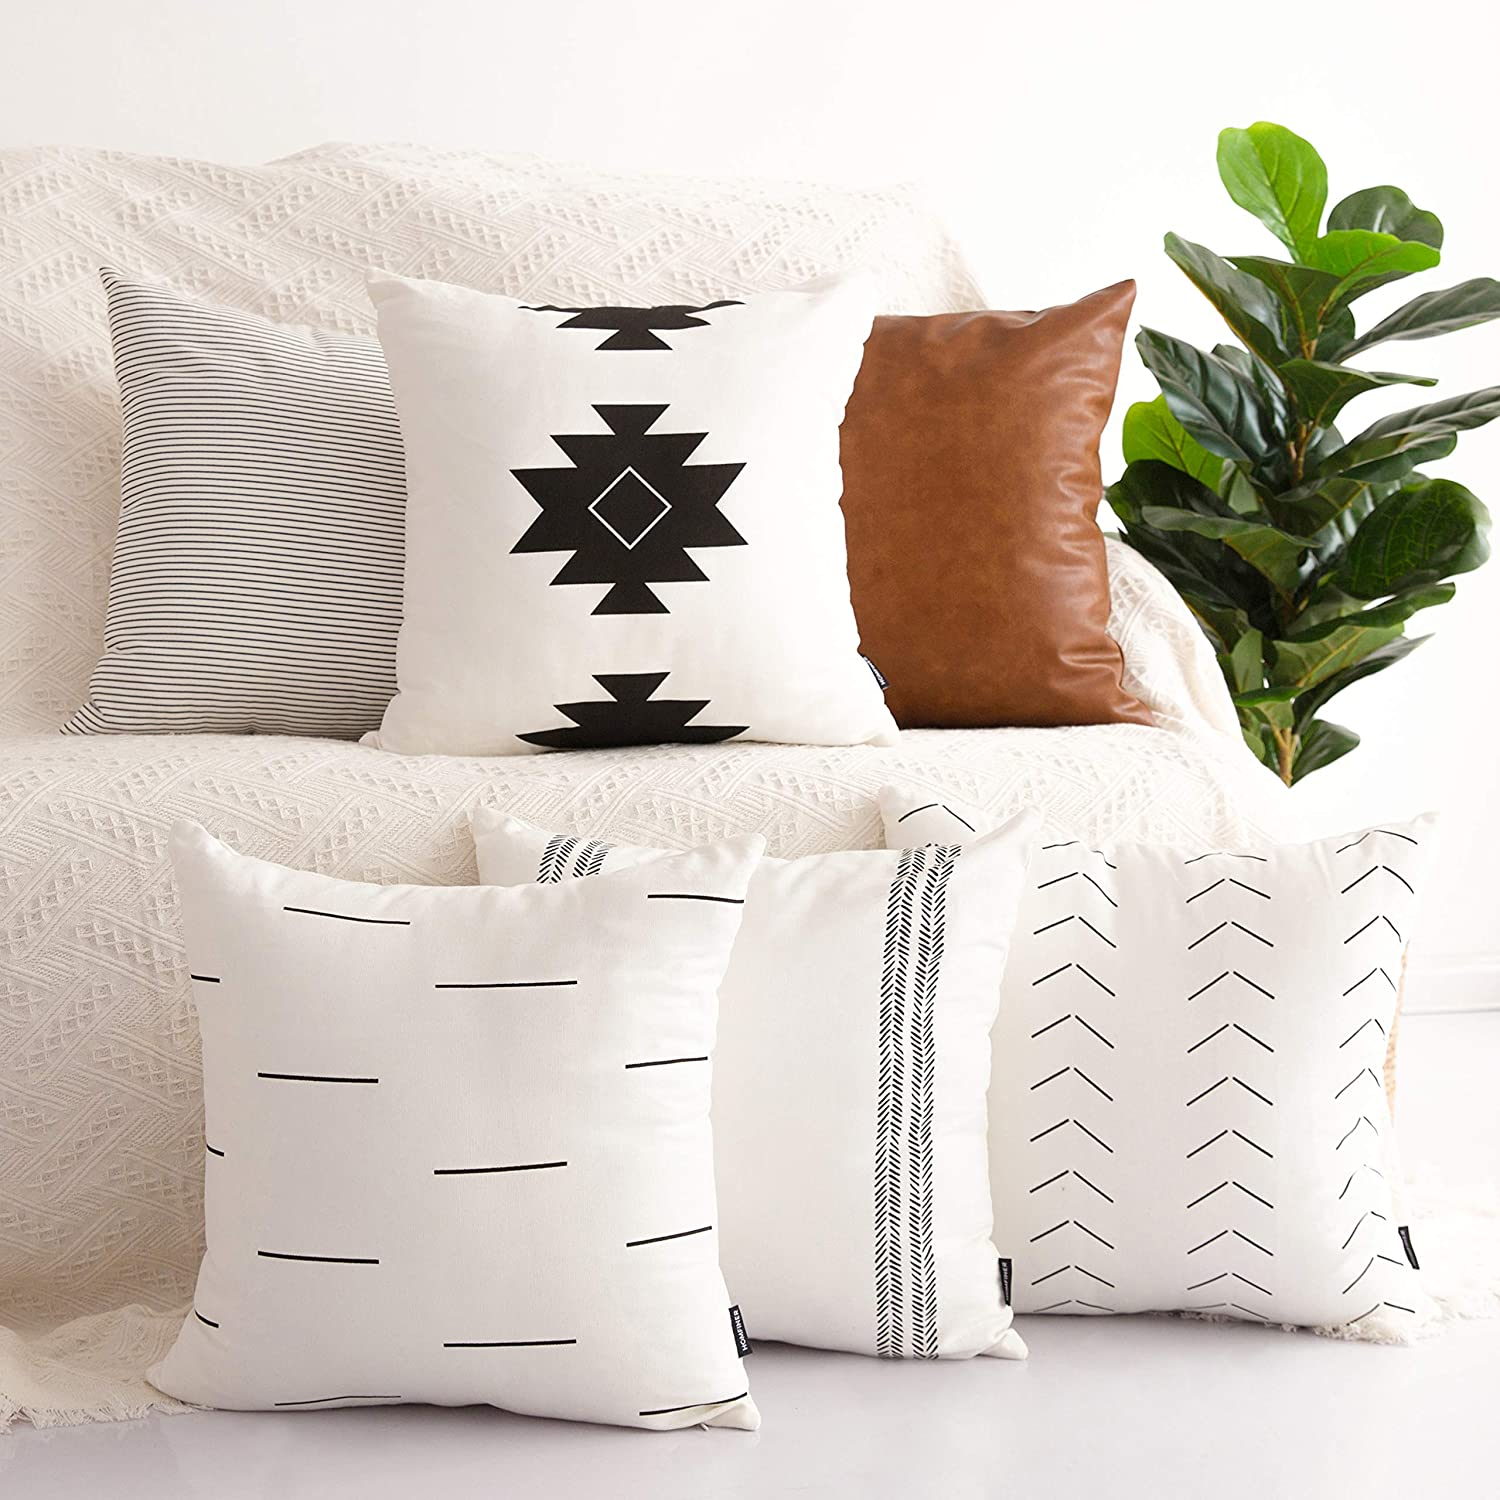 decorative-throw-pillow-covers-for-couch